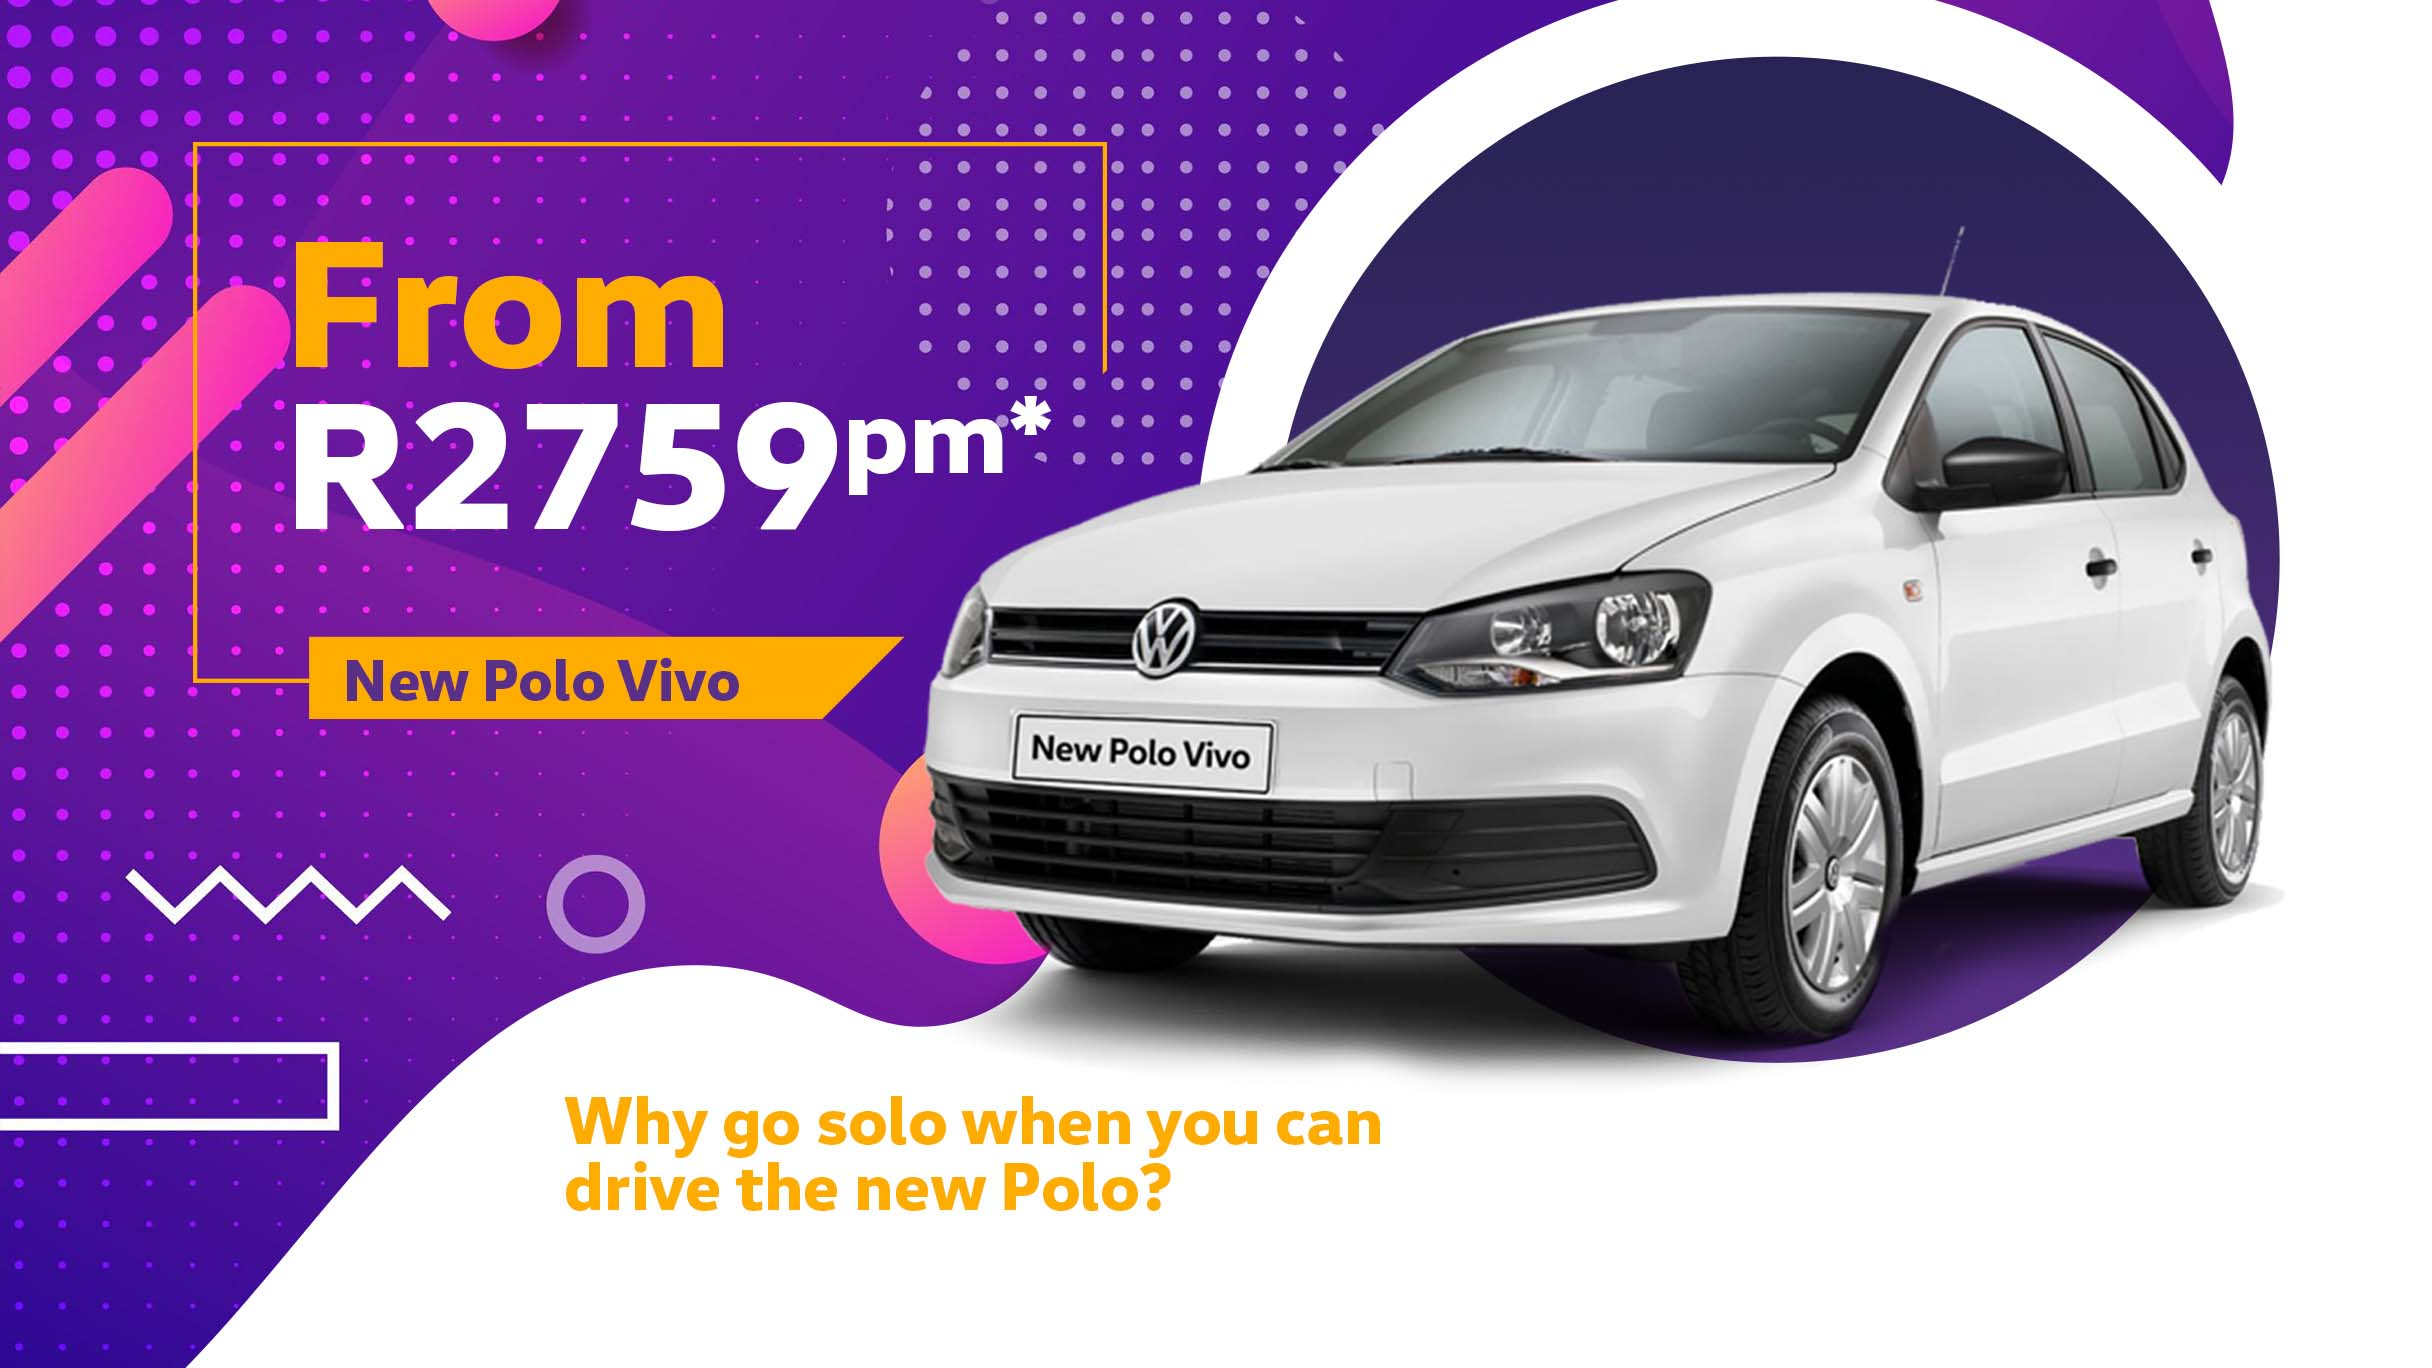 Polo Vivo offer at Barons Cape Town